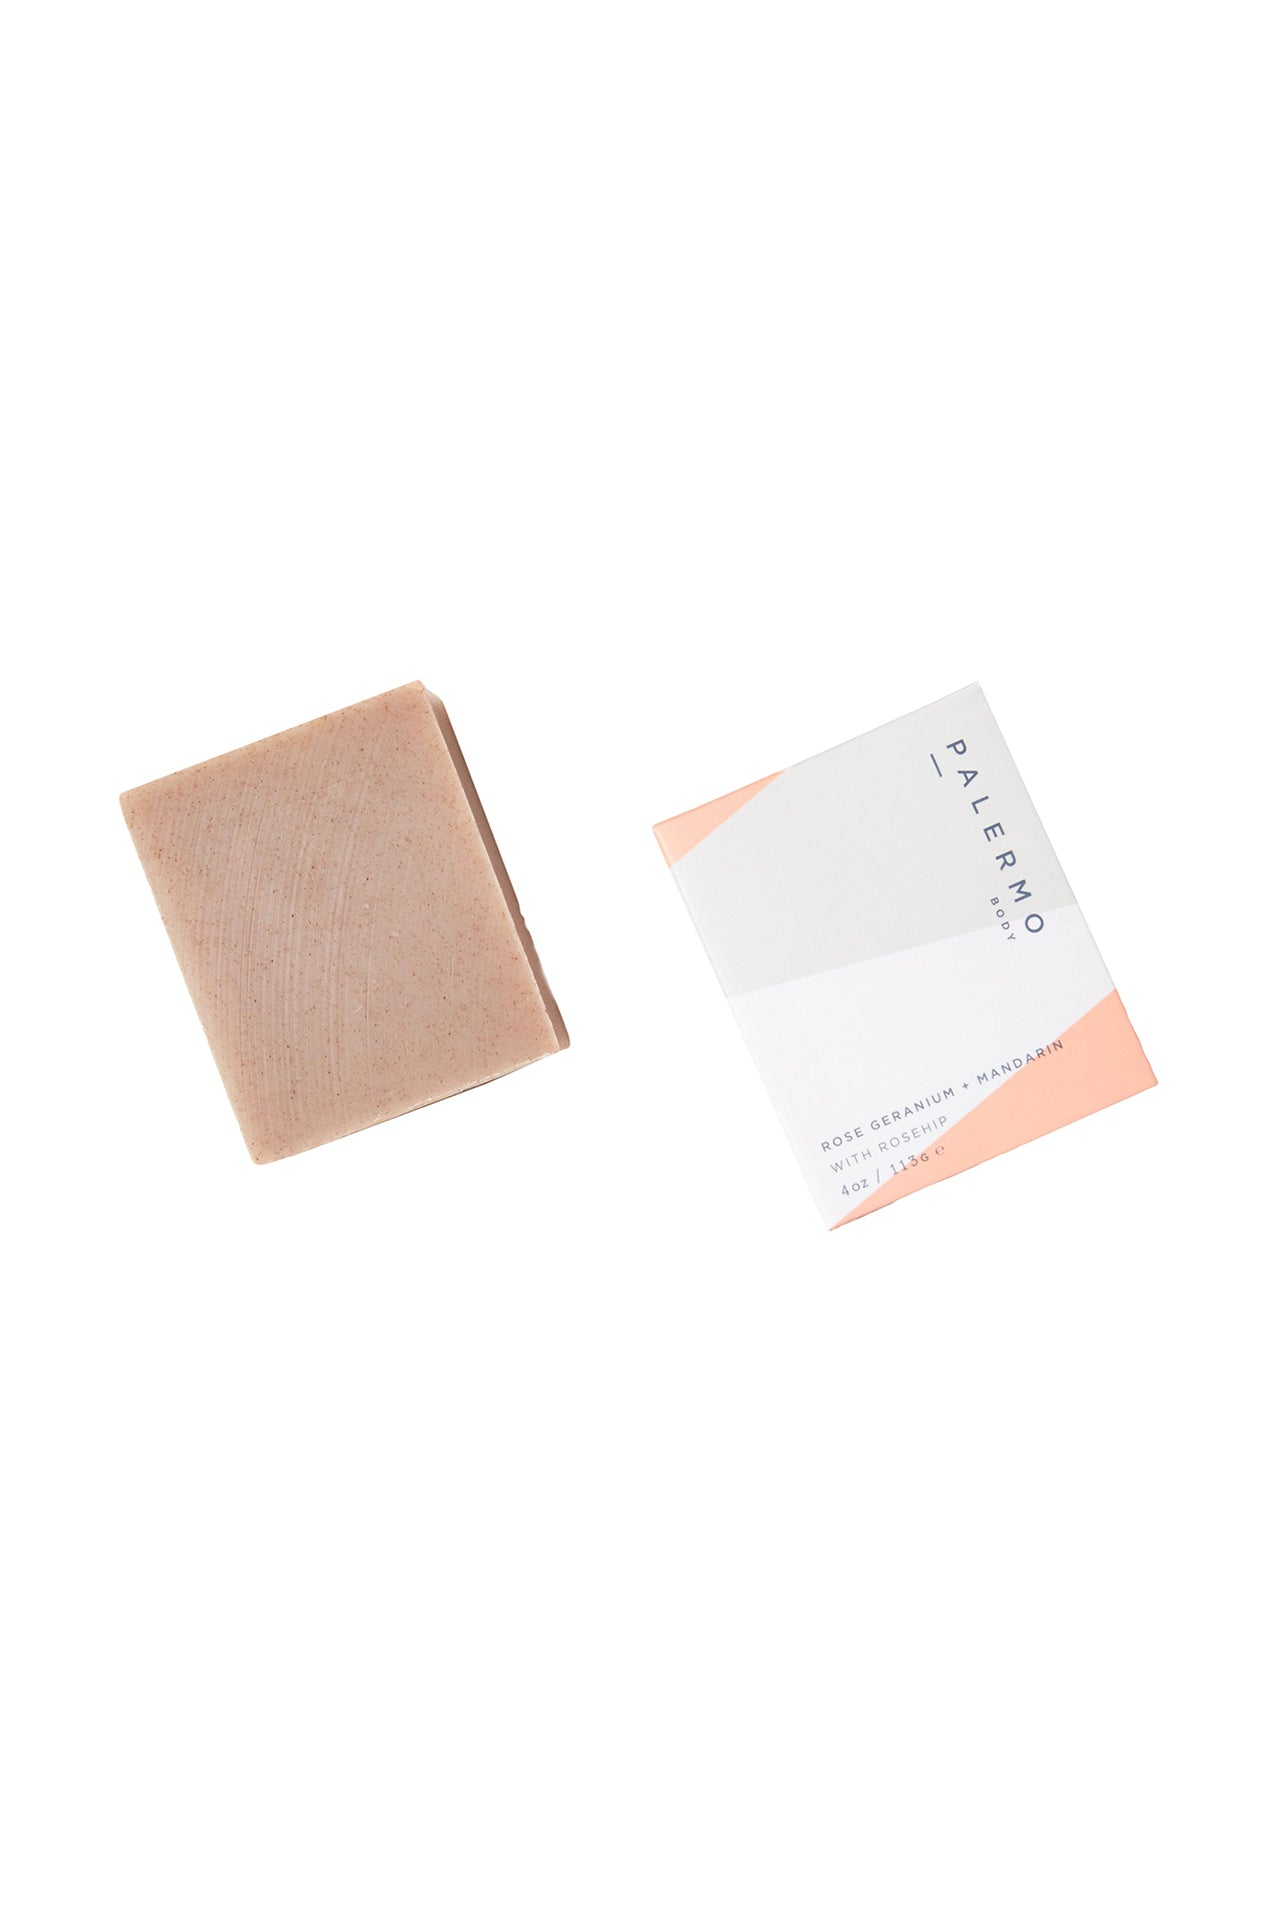 Rose Geranium & Mandarin with Rosehip Soap